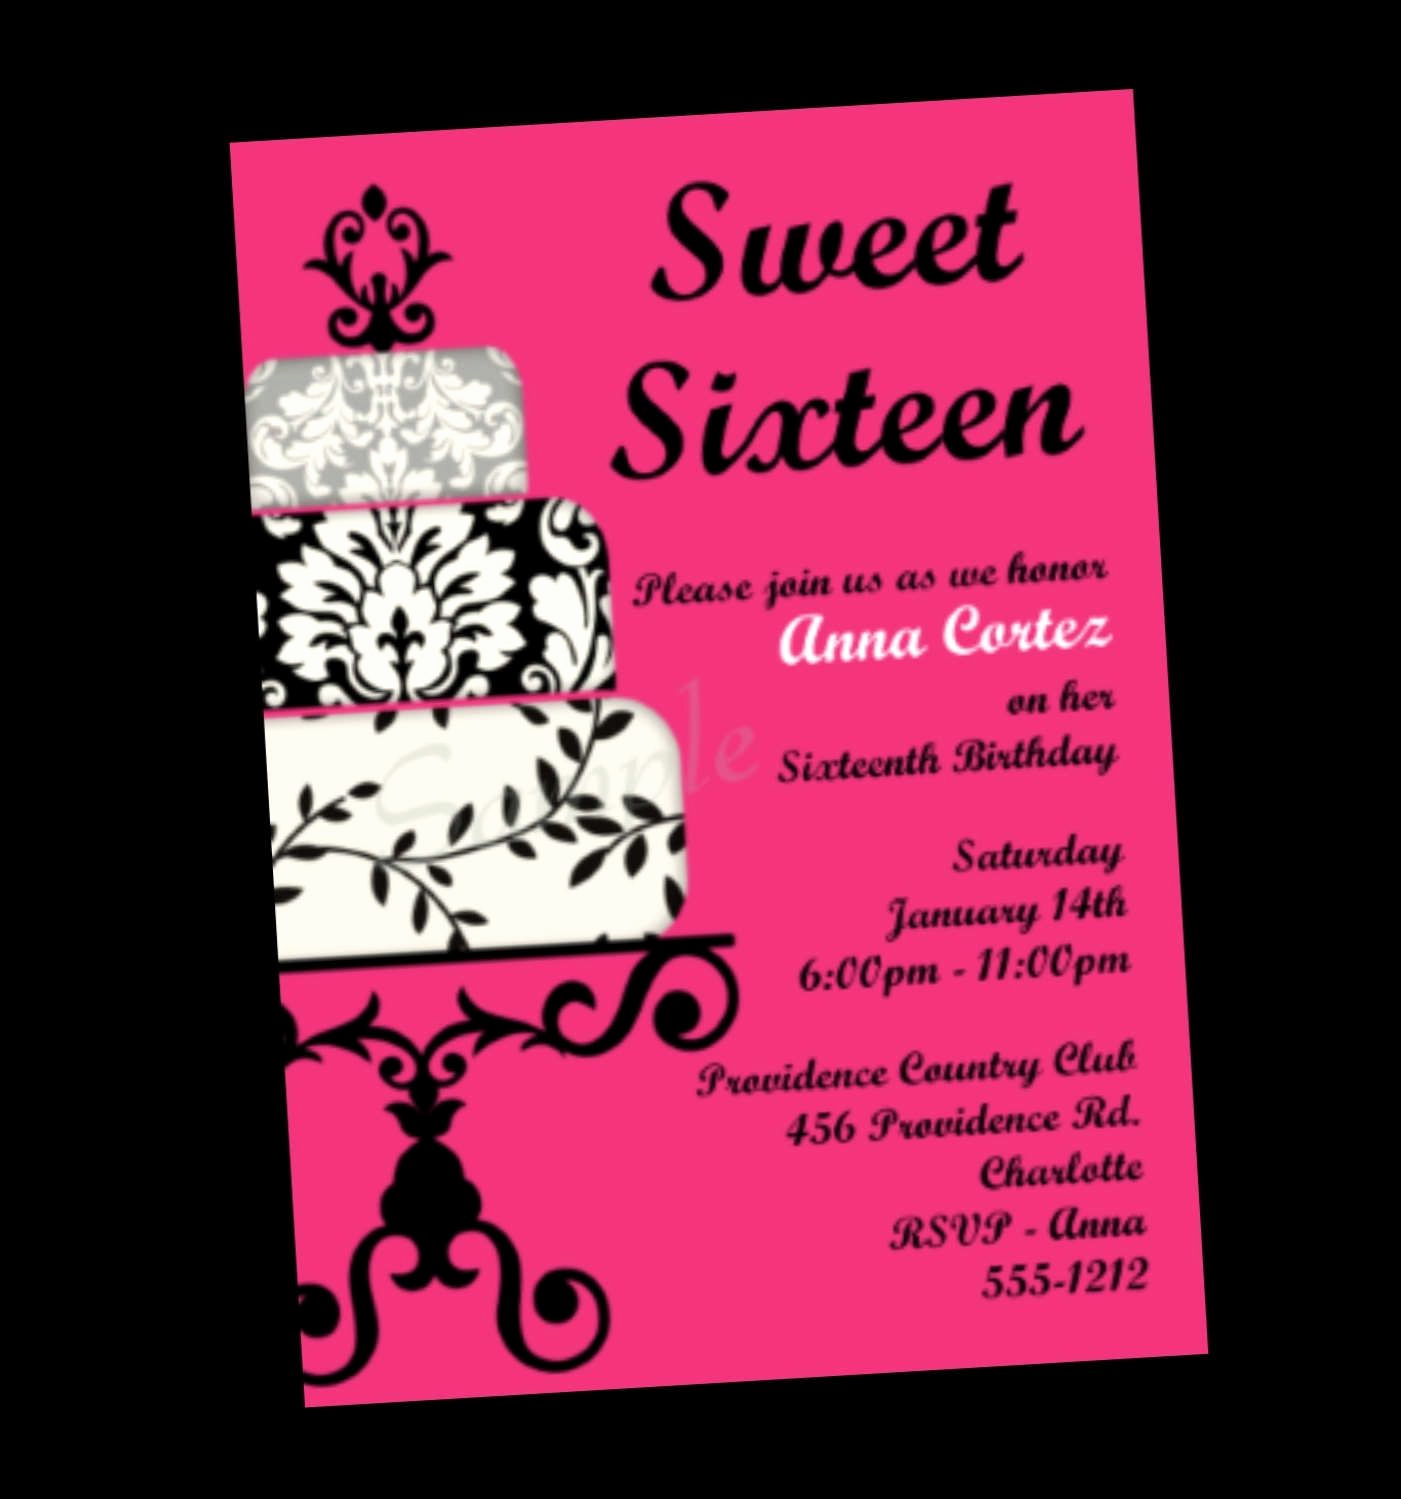 Sweet Sixteen Invitation Template Unique Invitations for Sweet 16 Birthday